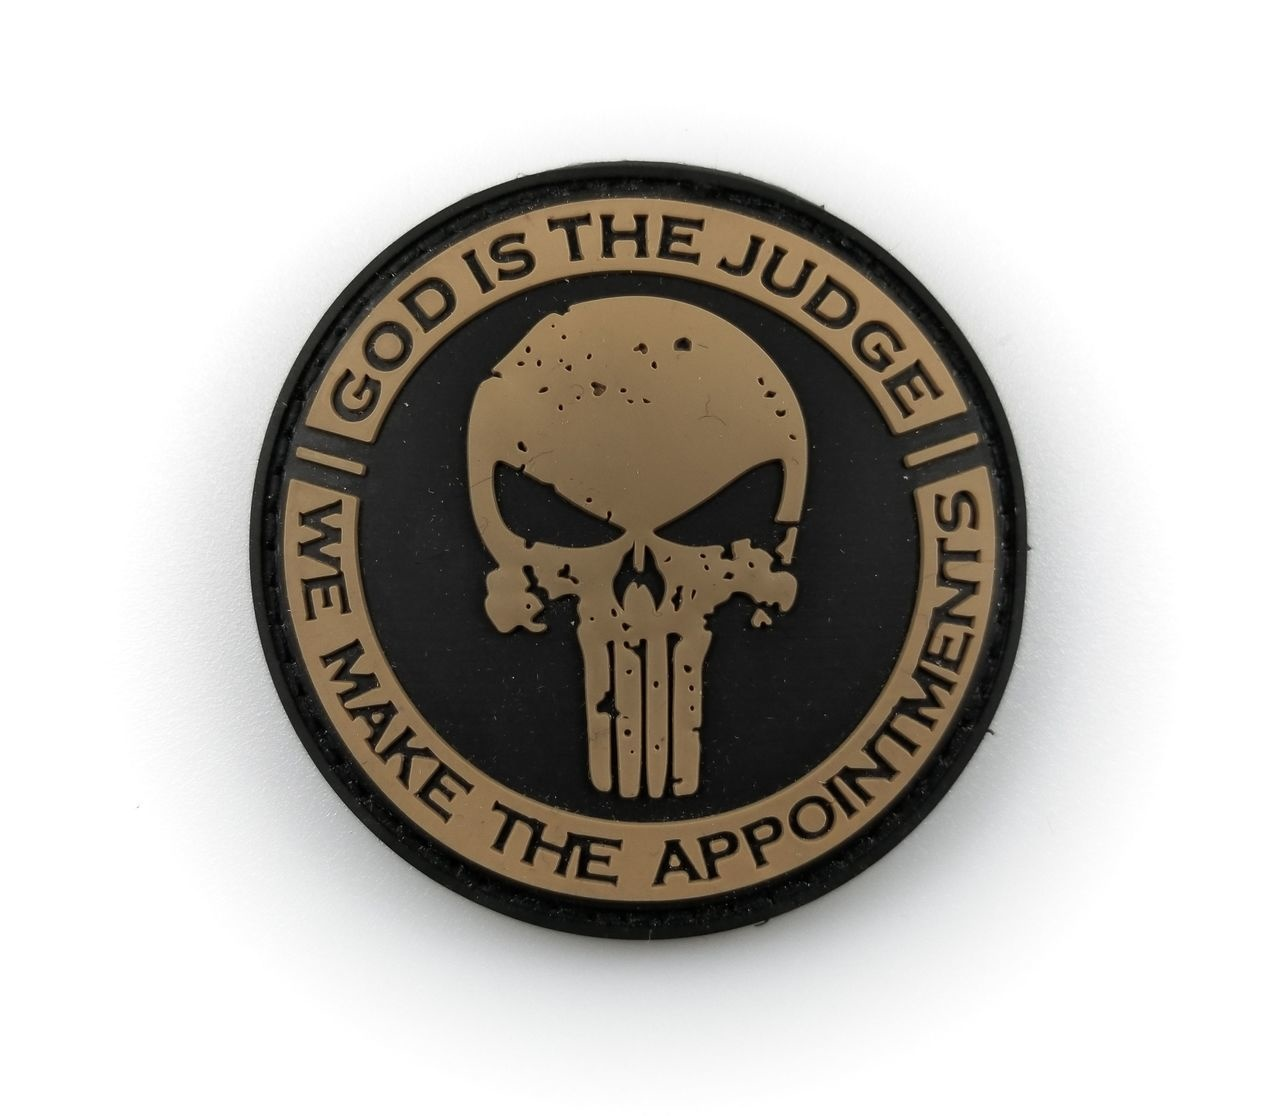 Tactical Innovations Canada PVC Patch - God is the Judge - Black/Tan